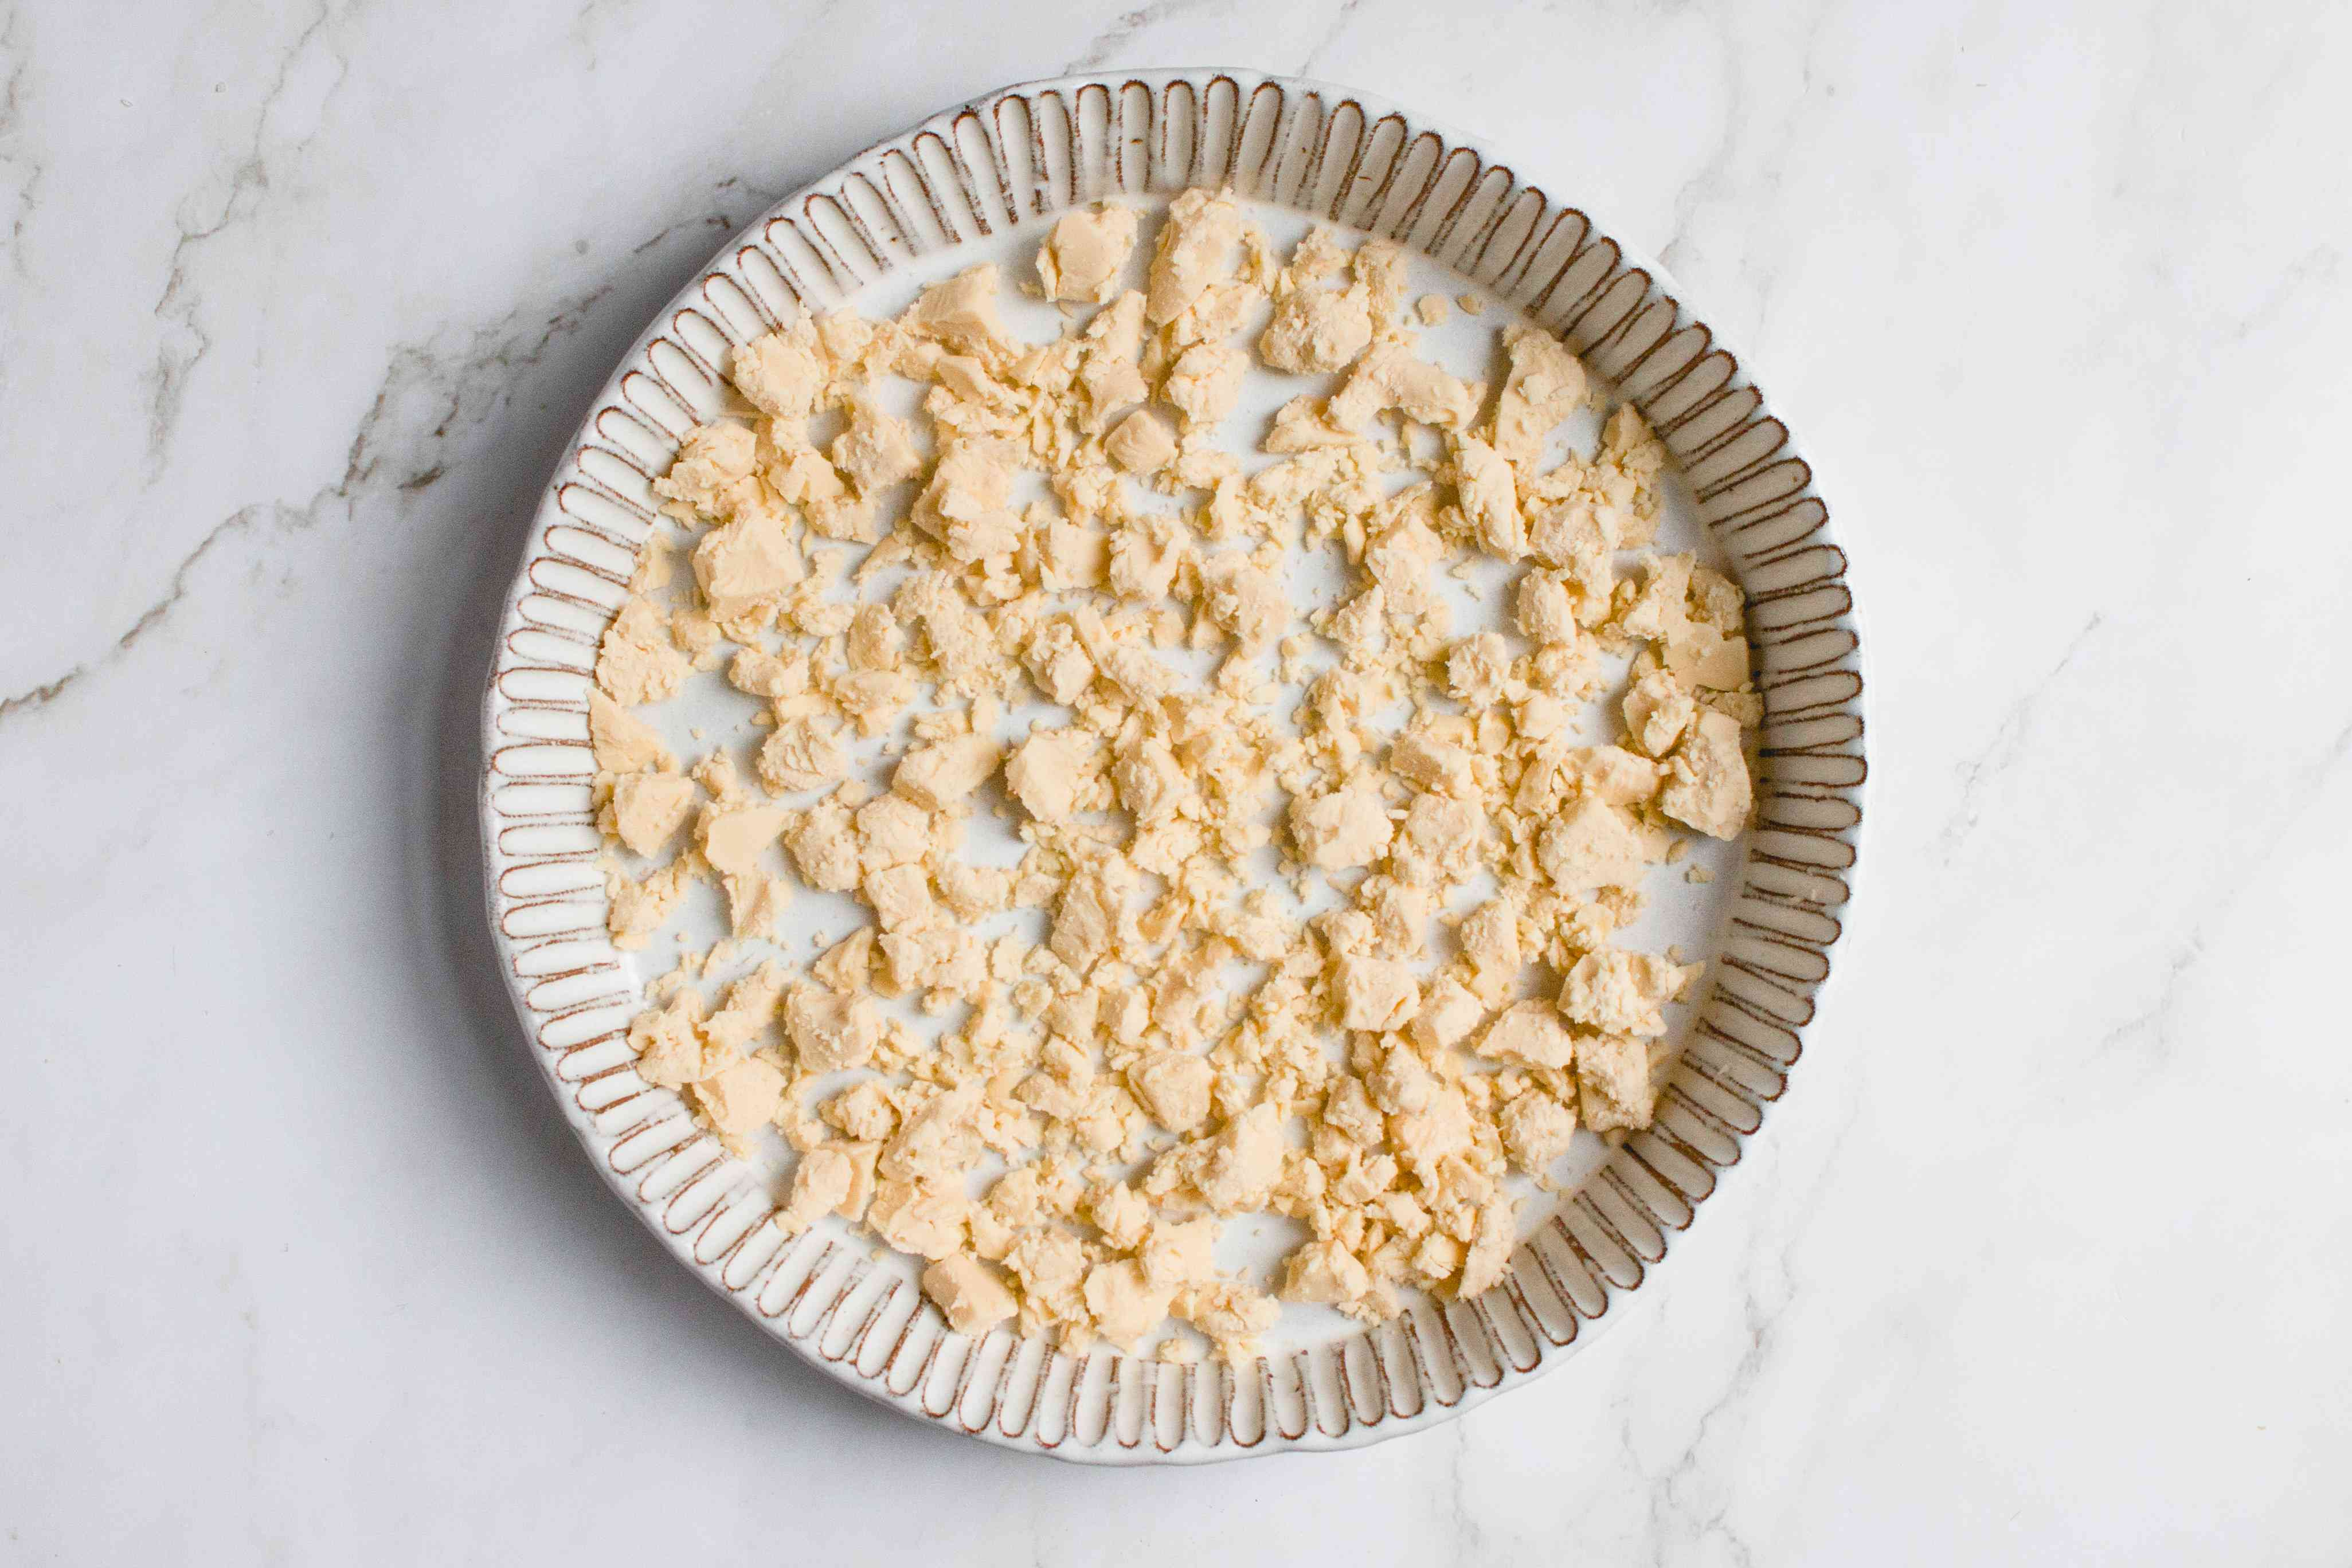 crumble dairy-free cheese into the bottom of a pie plate